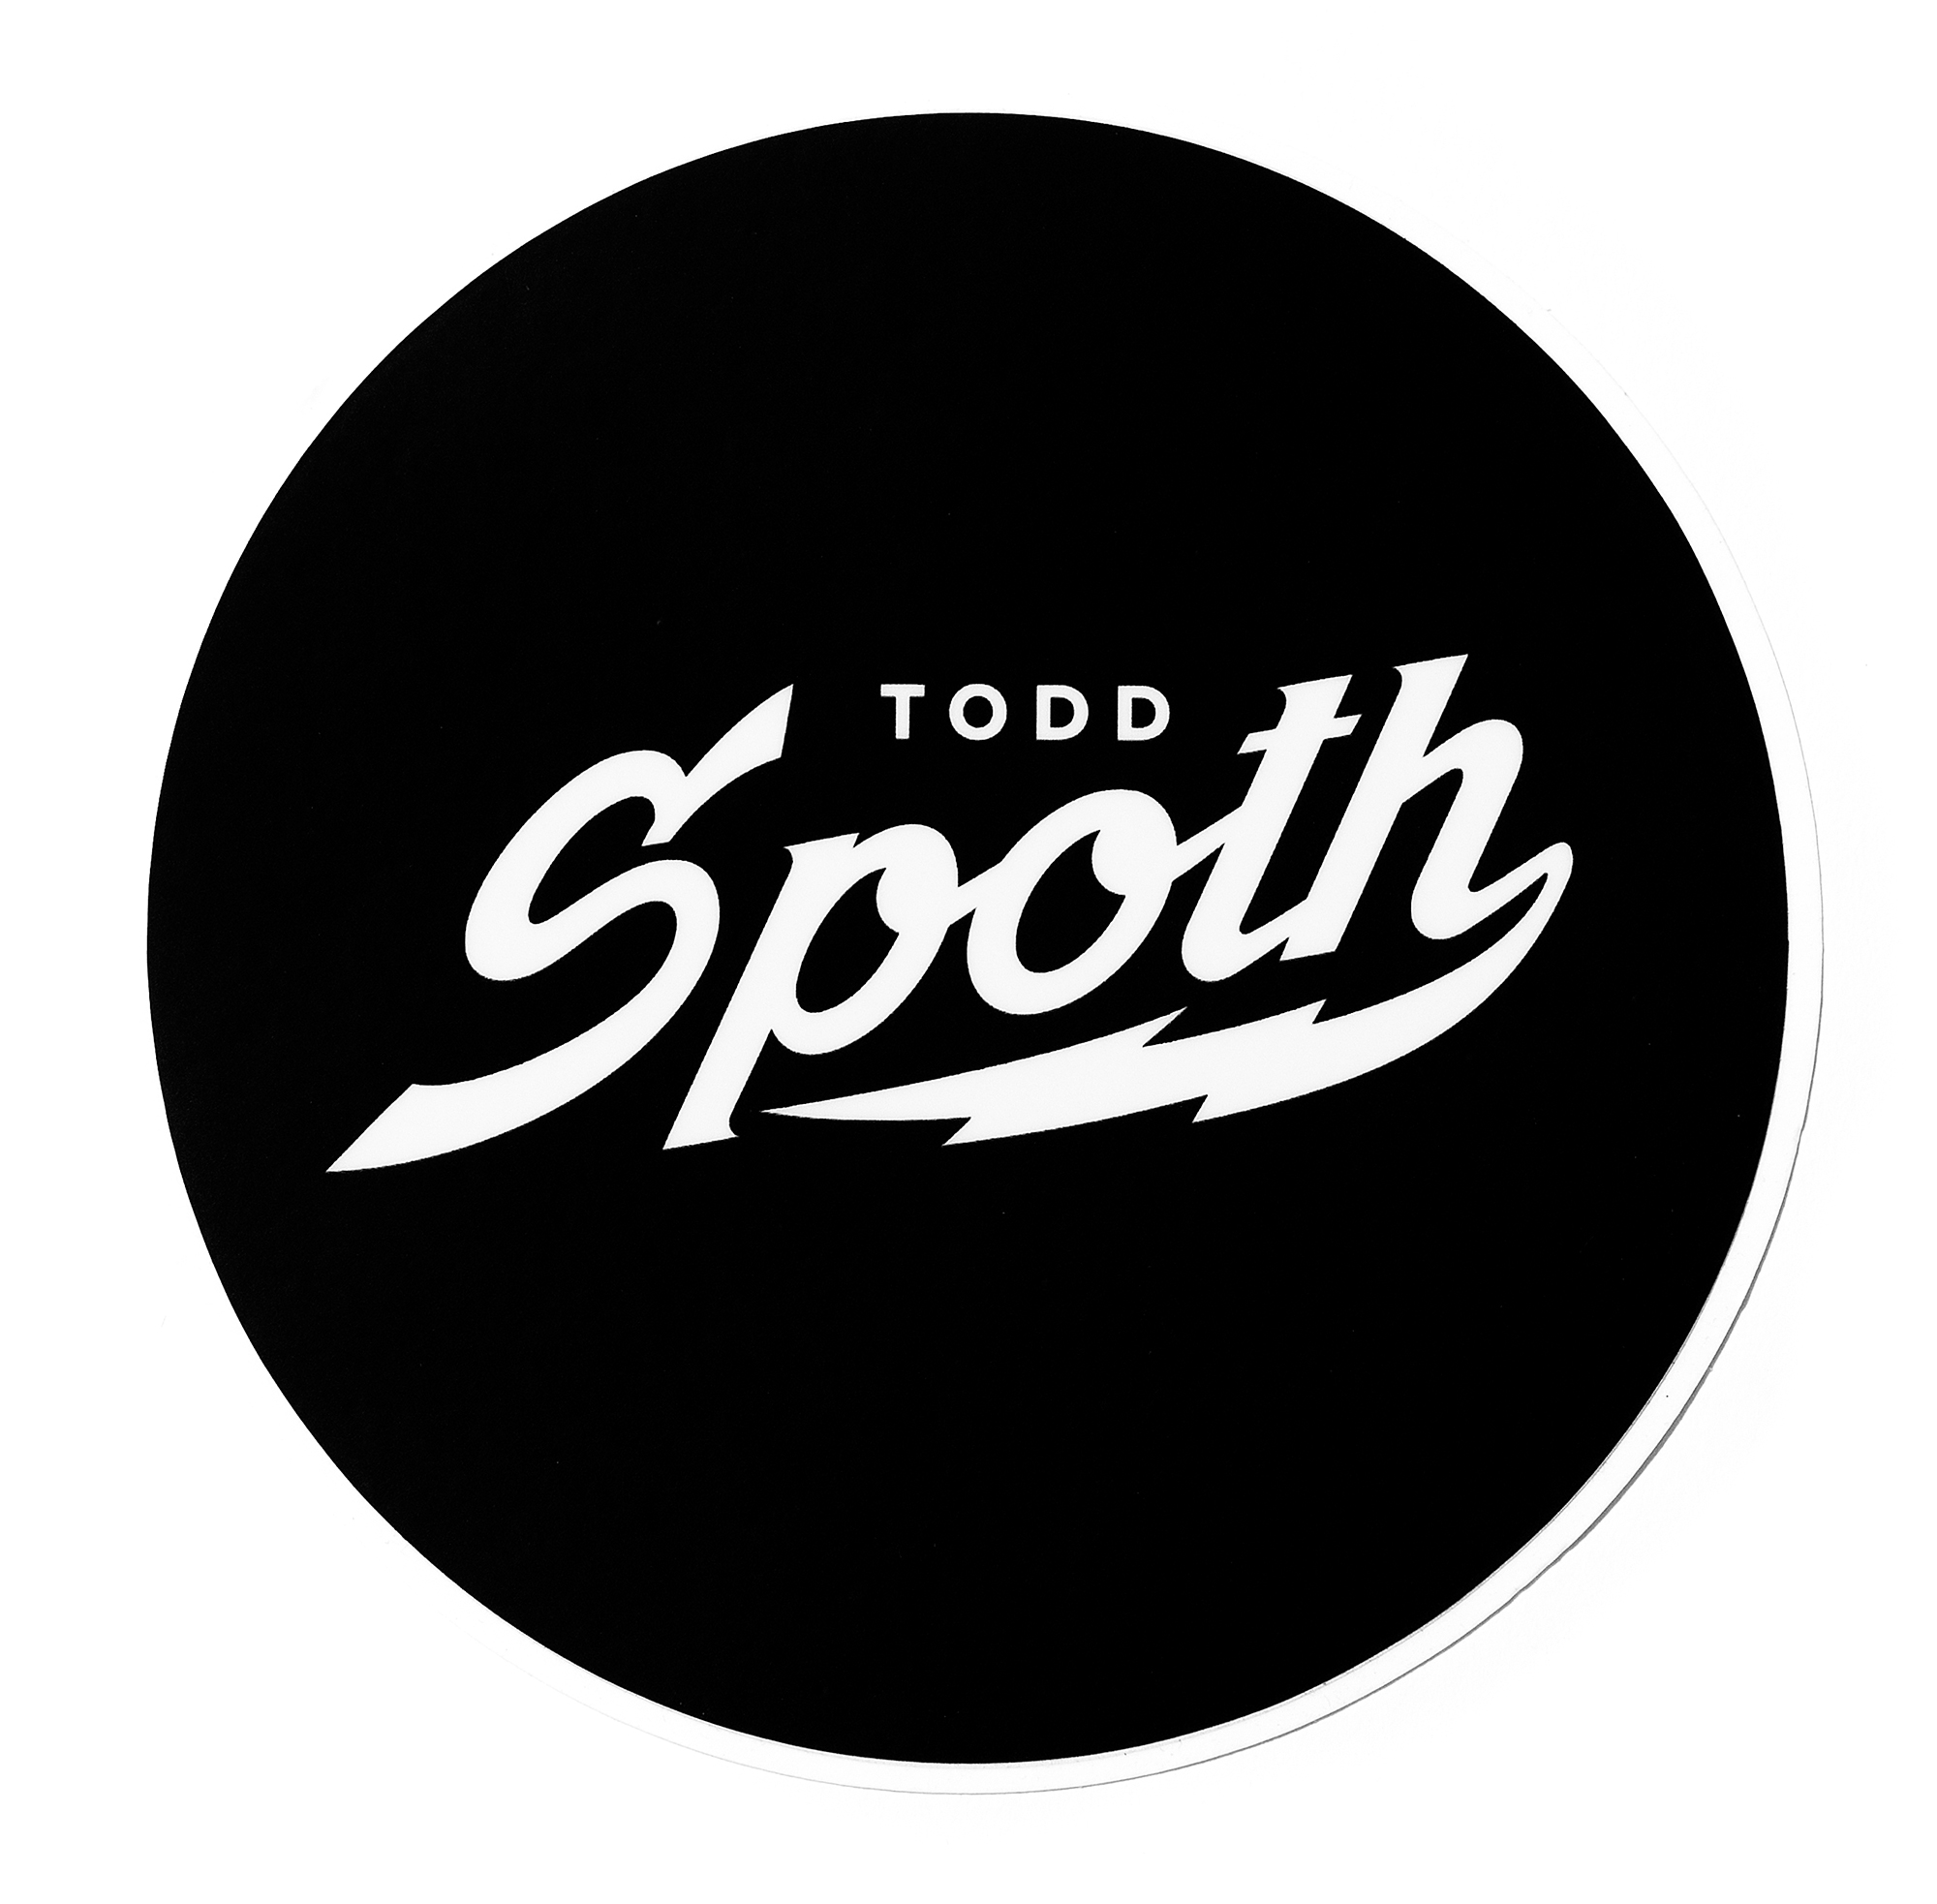 TODD SPOTH STICKER (2016)